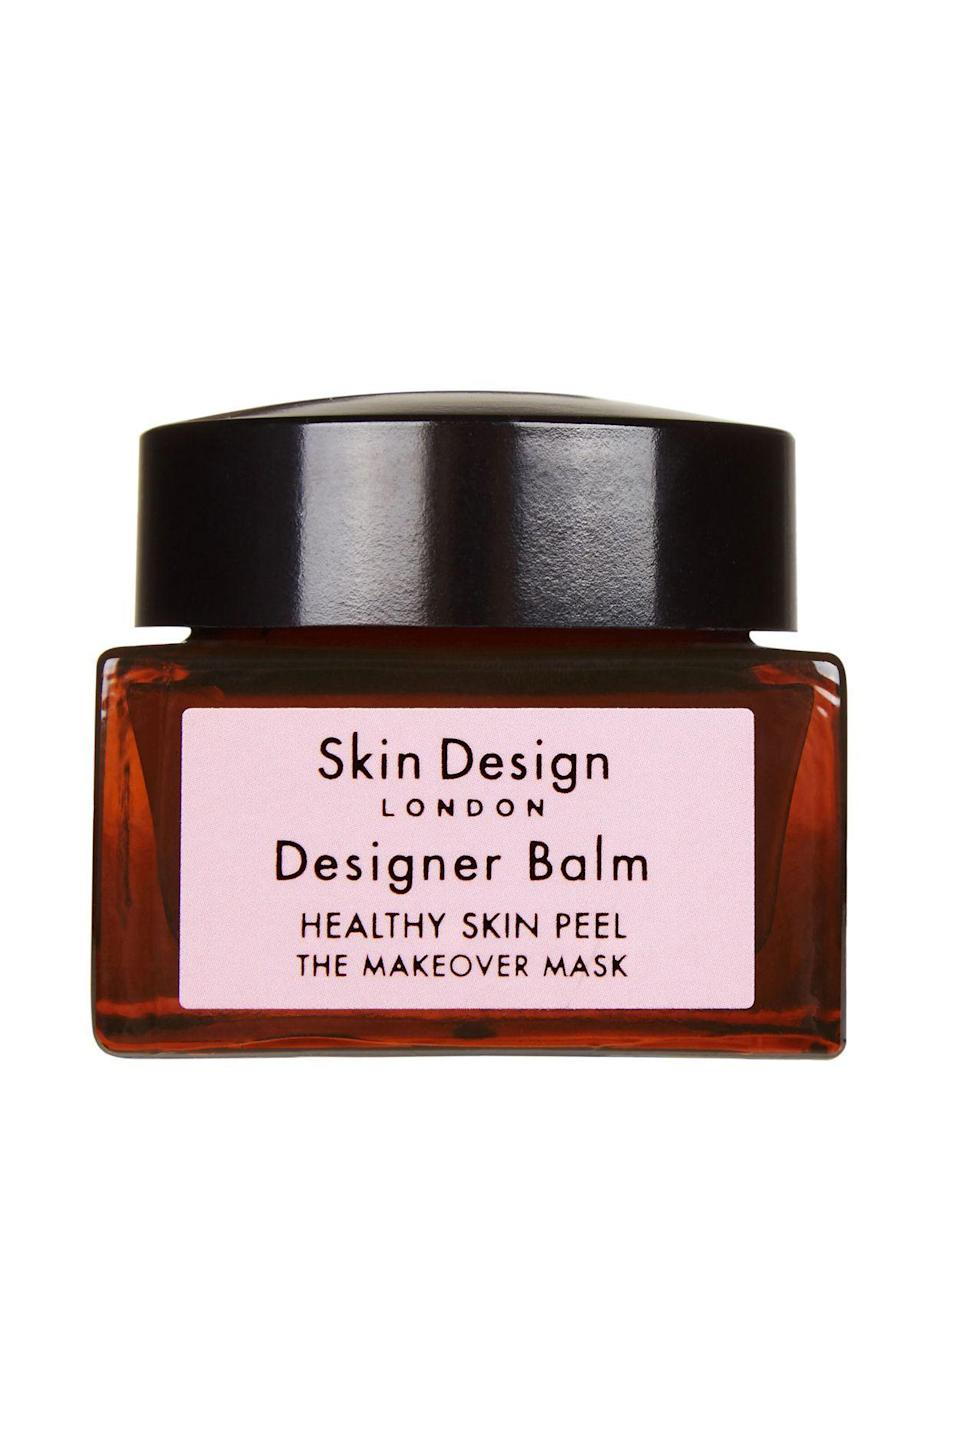 """<p><strong>Skin Design London</strong></p><p>neimanmarcus.com</p><p><strong>$105.00</strong></p><p><a href=""""https://go.redirectingat.com?id=74968X1596630&url=https%3A%2F%2Fwww.neimanmarcus.com%2Fp%2Fprod206470056&sref=https%3A%2F%2Fwww.marieclaire.com%2Fbeauty%2Fg33597196%2Fbest-retinol-creams%2F"""" rel=""""nofollow noopener"""" target=""""_blank"""" data-ylk=""""slk:SHOP IT"""" class=""""link rapid-noclick-resp"""">SHOP IT</a></p><p>Rose, retinol, and hyaluronic acid are a triple threat in this luxe balm. Massage it into the skin and rinse it off after fifteen minutes for an instantly glowy complexion.</p>"""